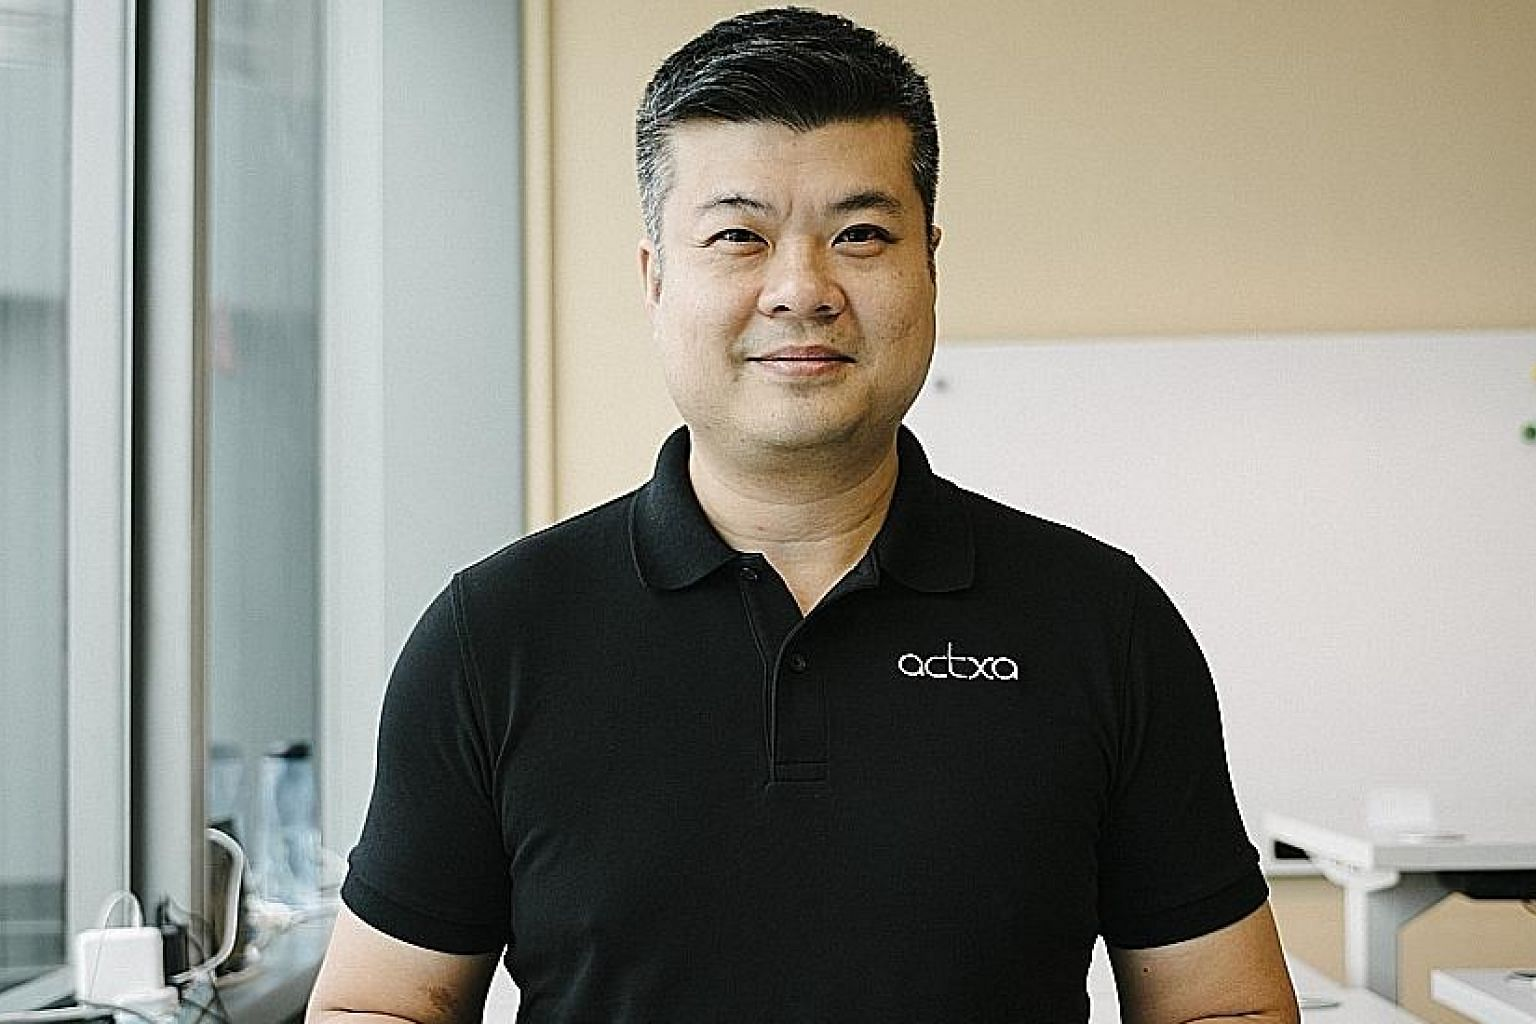 Local fitness wearables company Actxa, where Mr Lim Chun Hong is chief executive, saw its revenue leap 400 per cent last year compared to that for 2016.